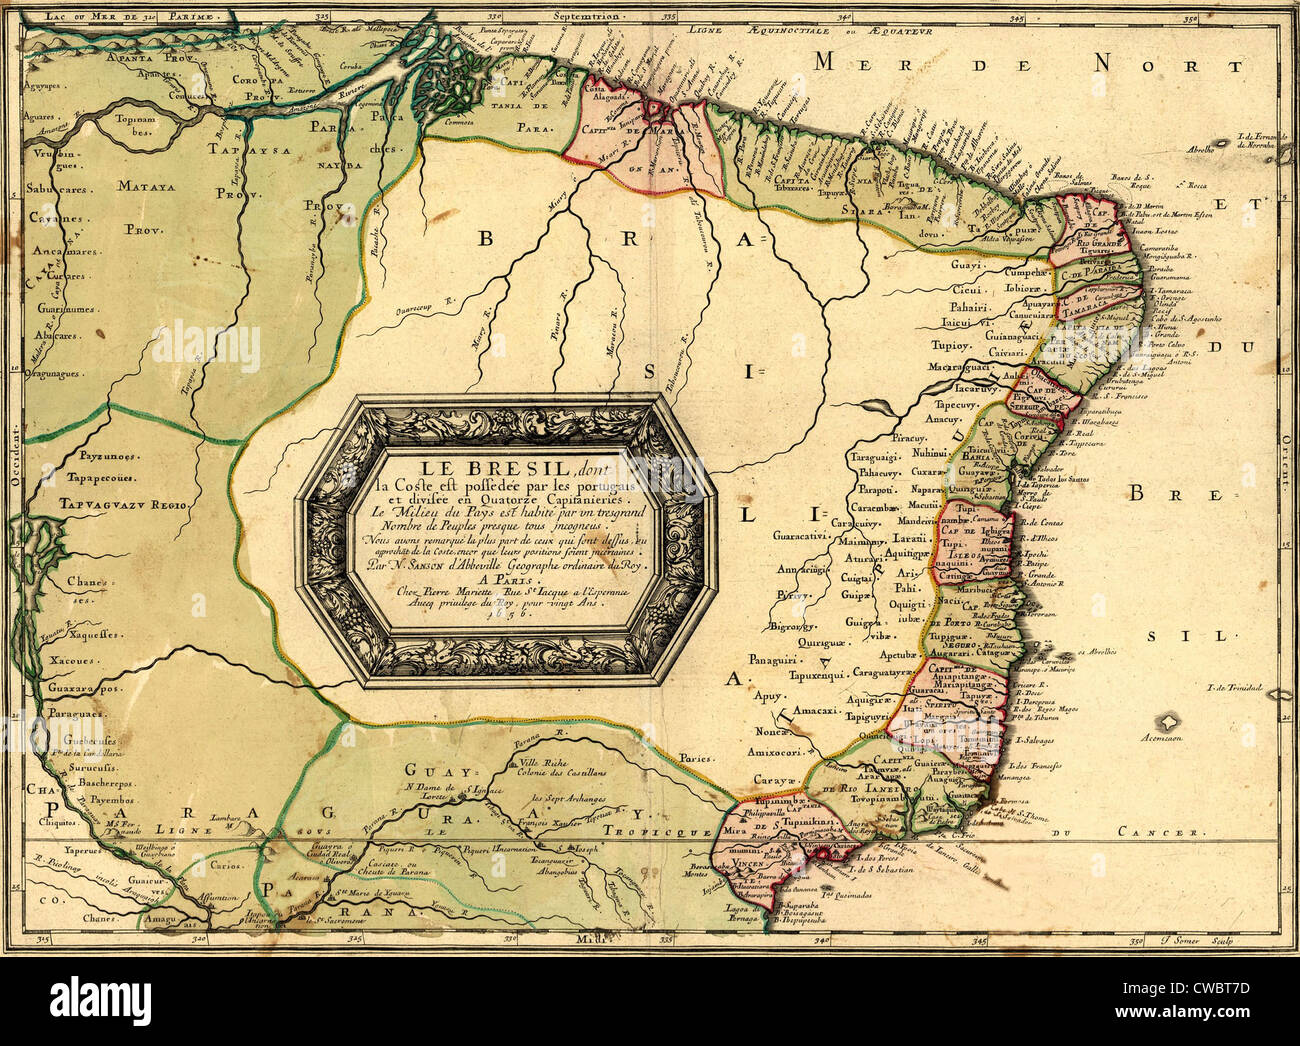 Historical Map Definition 1756 map of Brazil, showing geographic definition on the coast